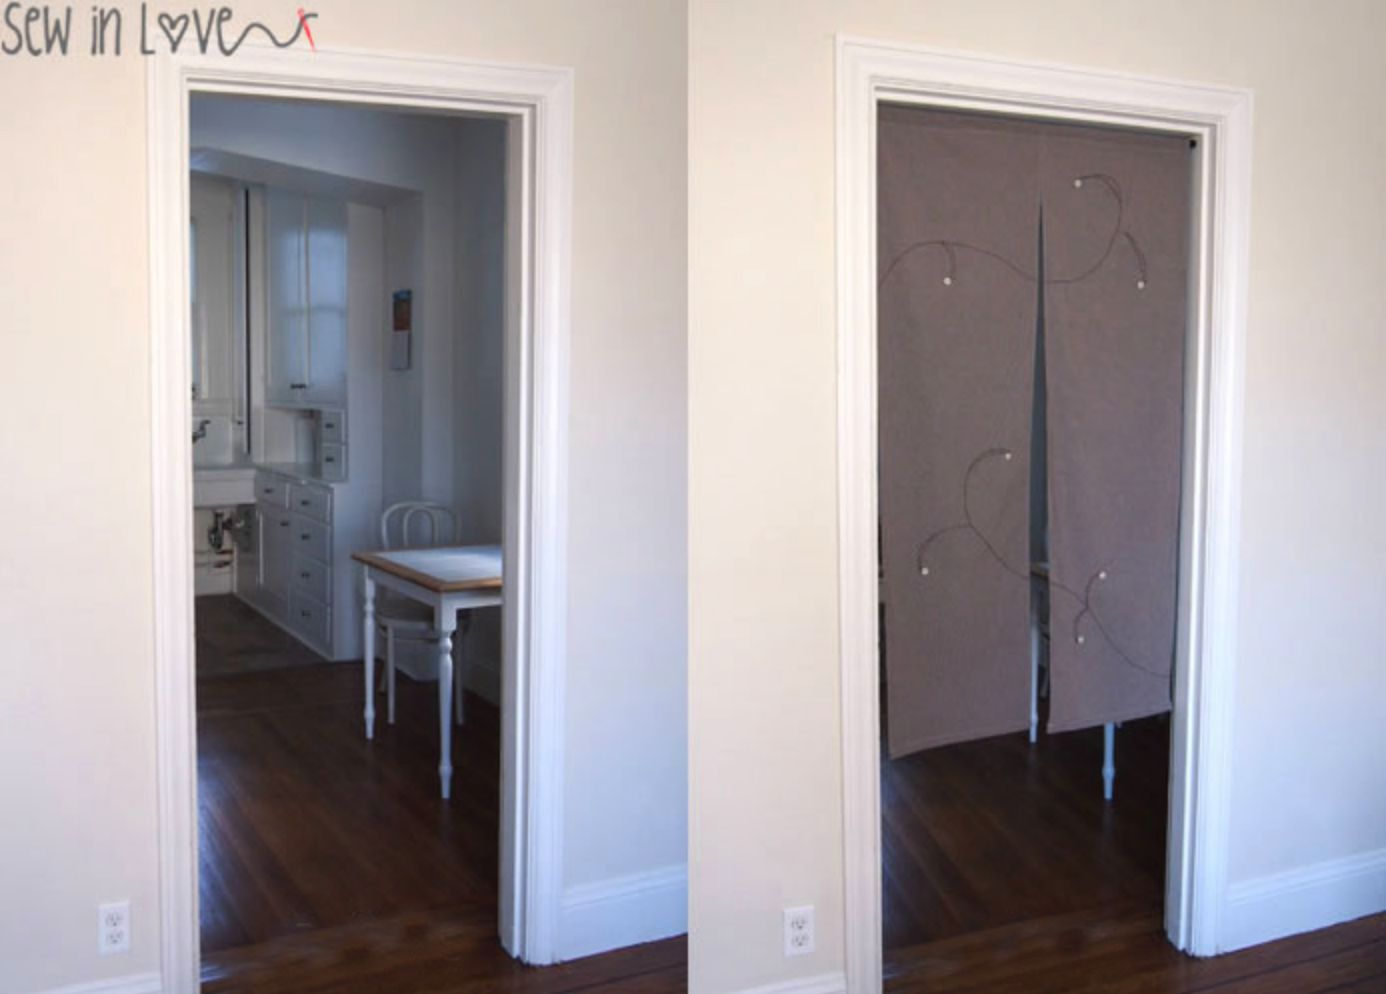 How to Sew Japanese Room Divider Curtains